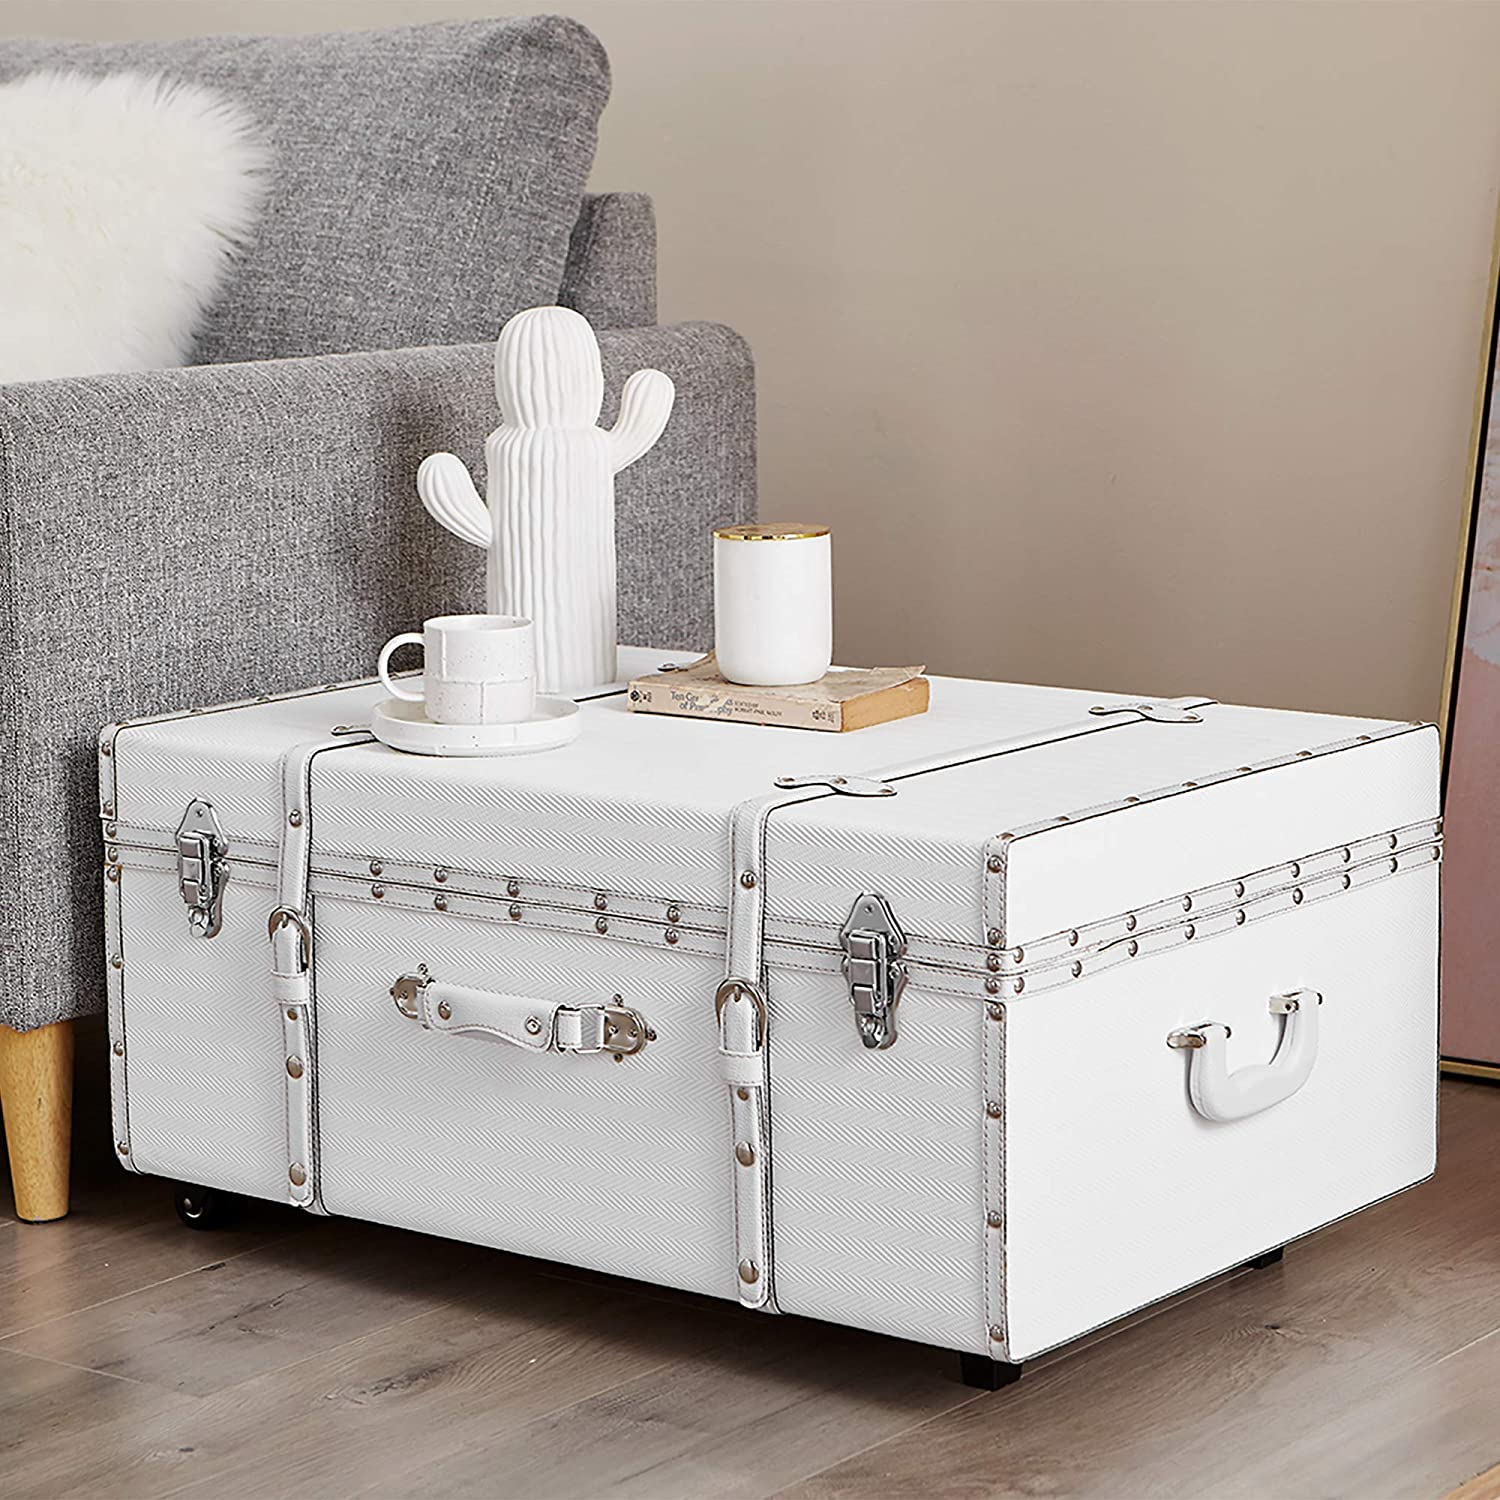 white-trunk-coffee-table-low-height-with-wheels-handle-padlock-stylish-storage-furniture-for-modern-bohemian-living-room-travel-decor